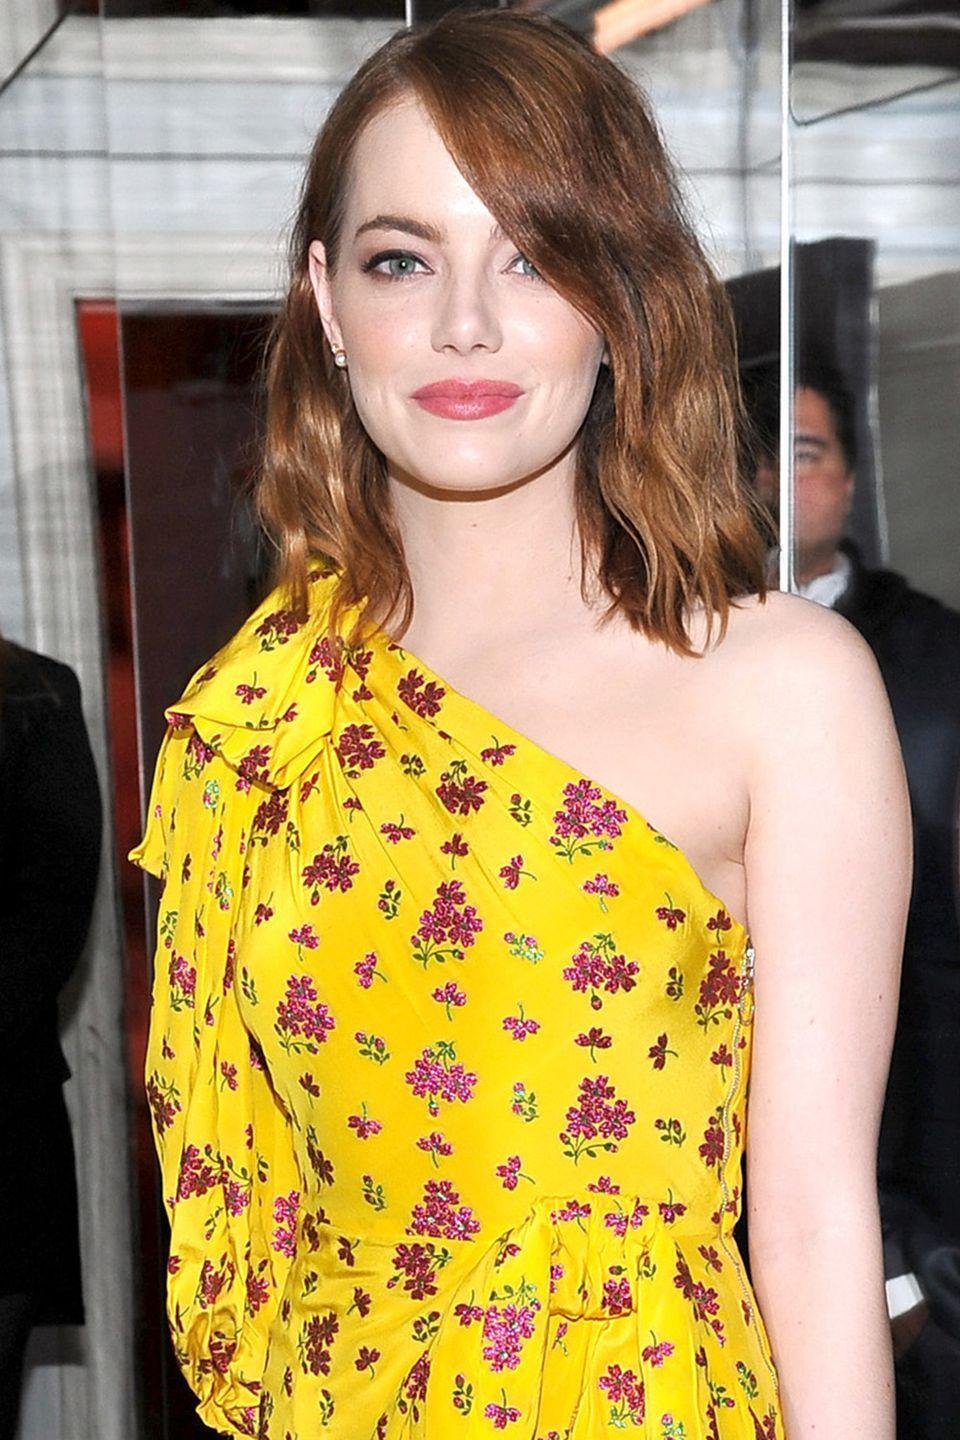 """<p><strong>Born</strong>: Emily Jean Stone</p><p>The <em>La La Land</em> actress told <em> <a href=""""https://www.wmagazine.com/story/emma-stone-was-nervous-about-singing-in-la-la-land"""" rel=""""nofollow noopener"""" target=""""_blank"""" data-ylk=""""slk:W magazine"""" class=""""link rapid-noclick-resp"""">W magazine</a></em> that she had to rebrand herself when she was 16 years old because there was already an Emily Stone in Hollywood. """"I changed it to Emma because you know it's closer to Emily, but most people call me 'M,' that know me well,"""" the actress <a href=""""https://www.wmagazine.com/story/emma-stone-was-nervous-about-singing-in-la-la-land"""" rel=""""nofollow noopener"""" target=""""_blank"""" data-ylk=""""slk:explained"""" class=""""link rapid-noclick-resp"""">explained</a> to the publication. </p>"""